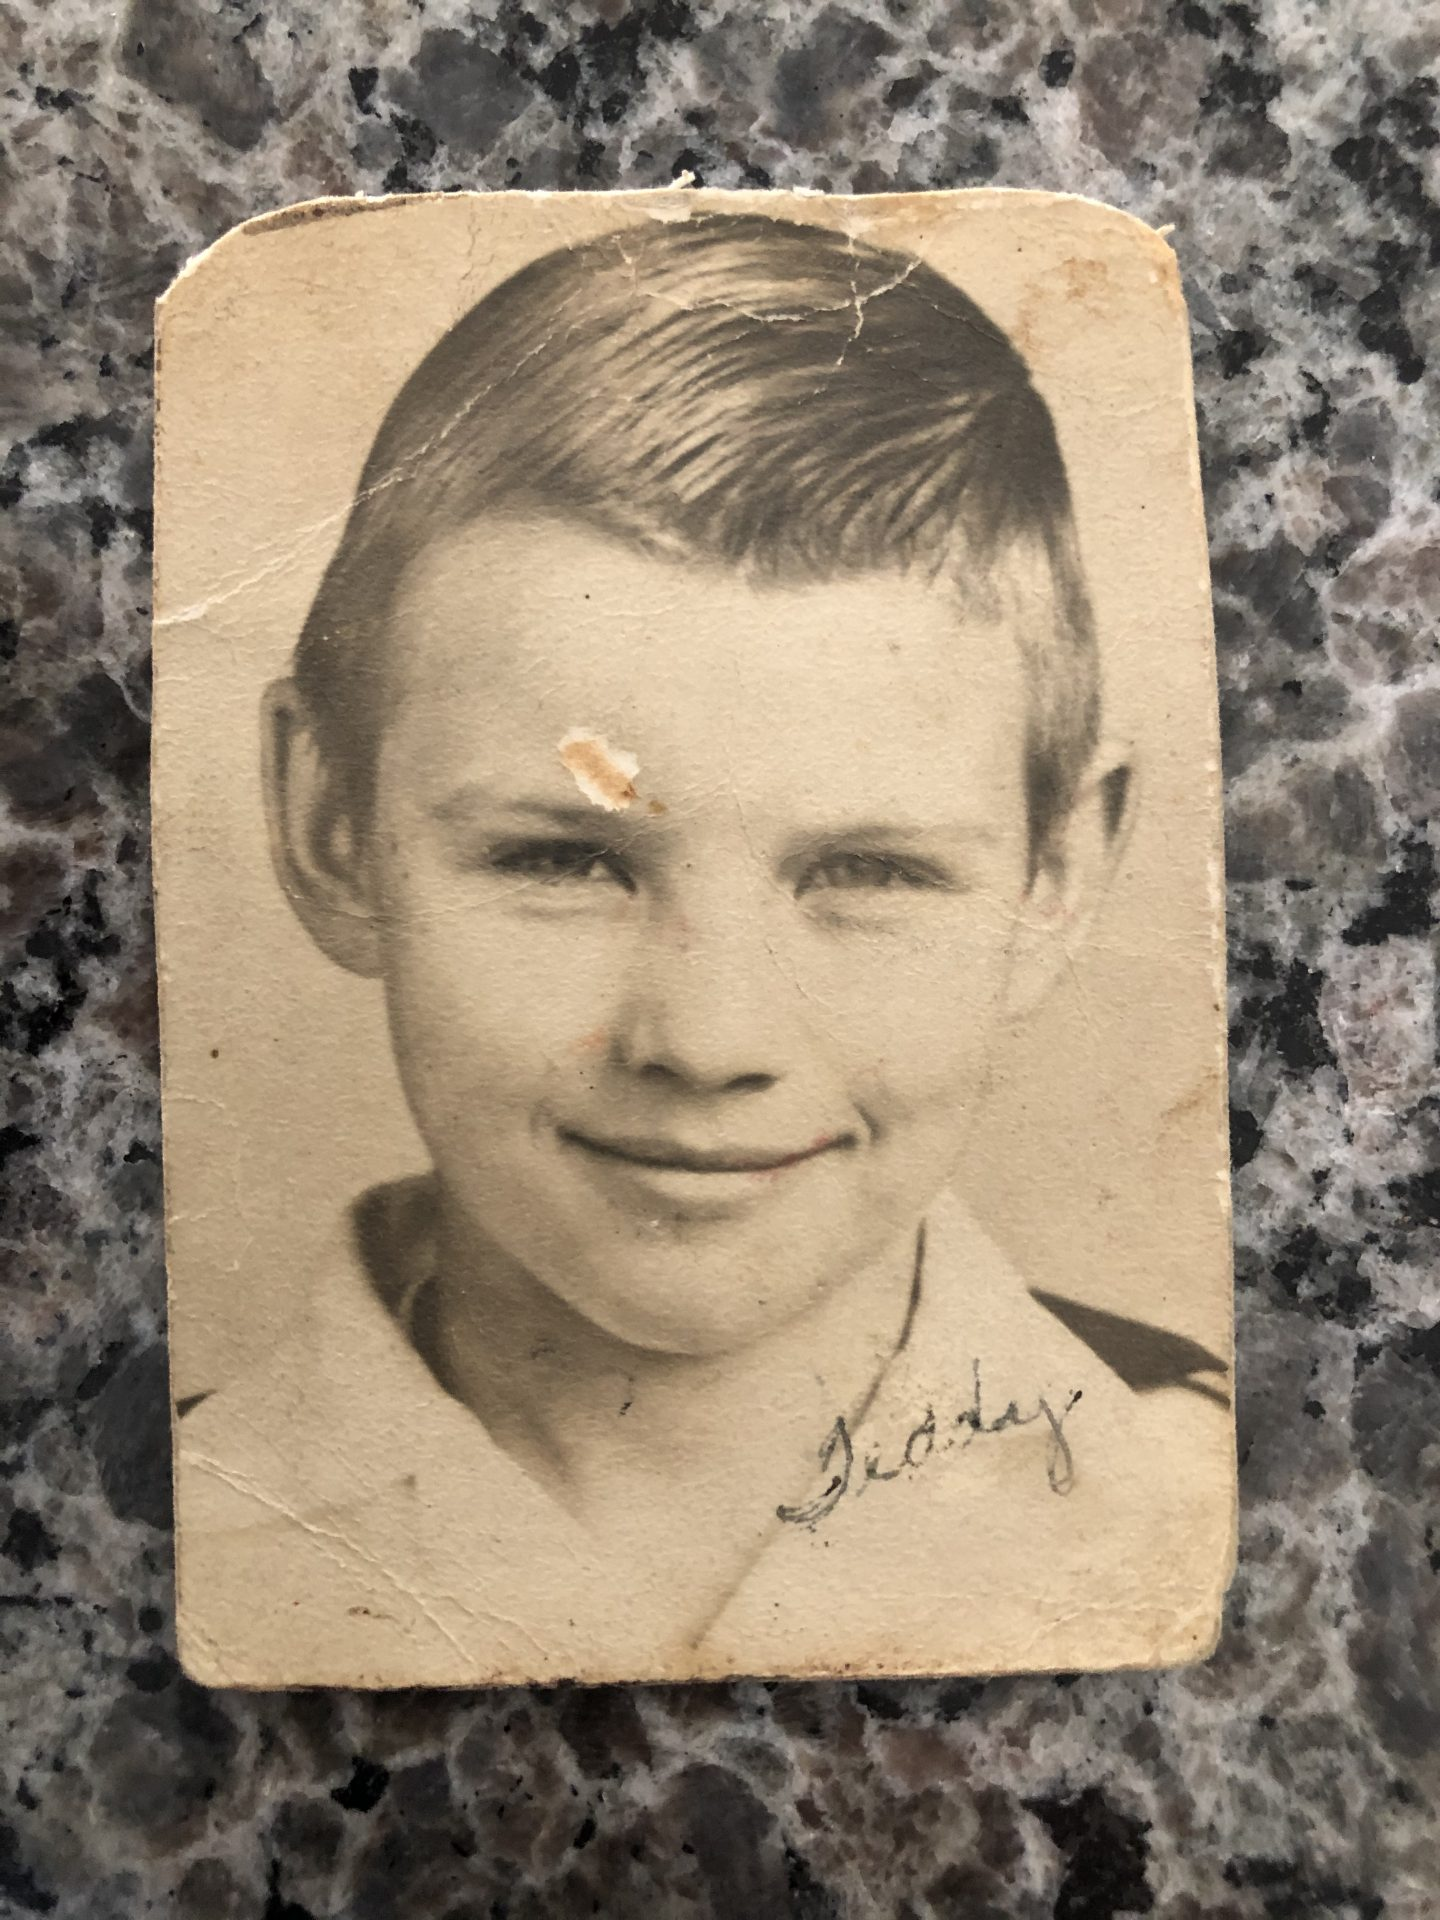 Dad at the age of 10 or 11 (1947)